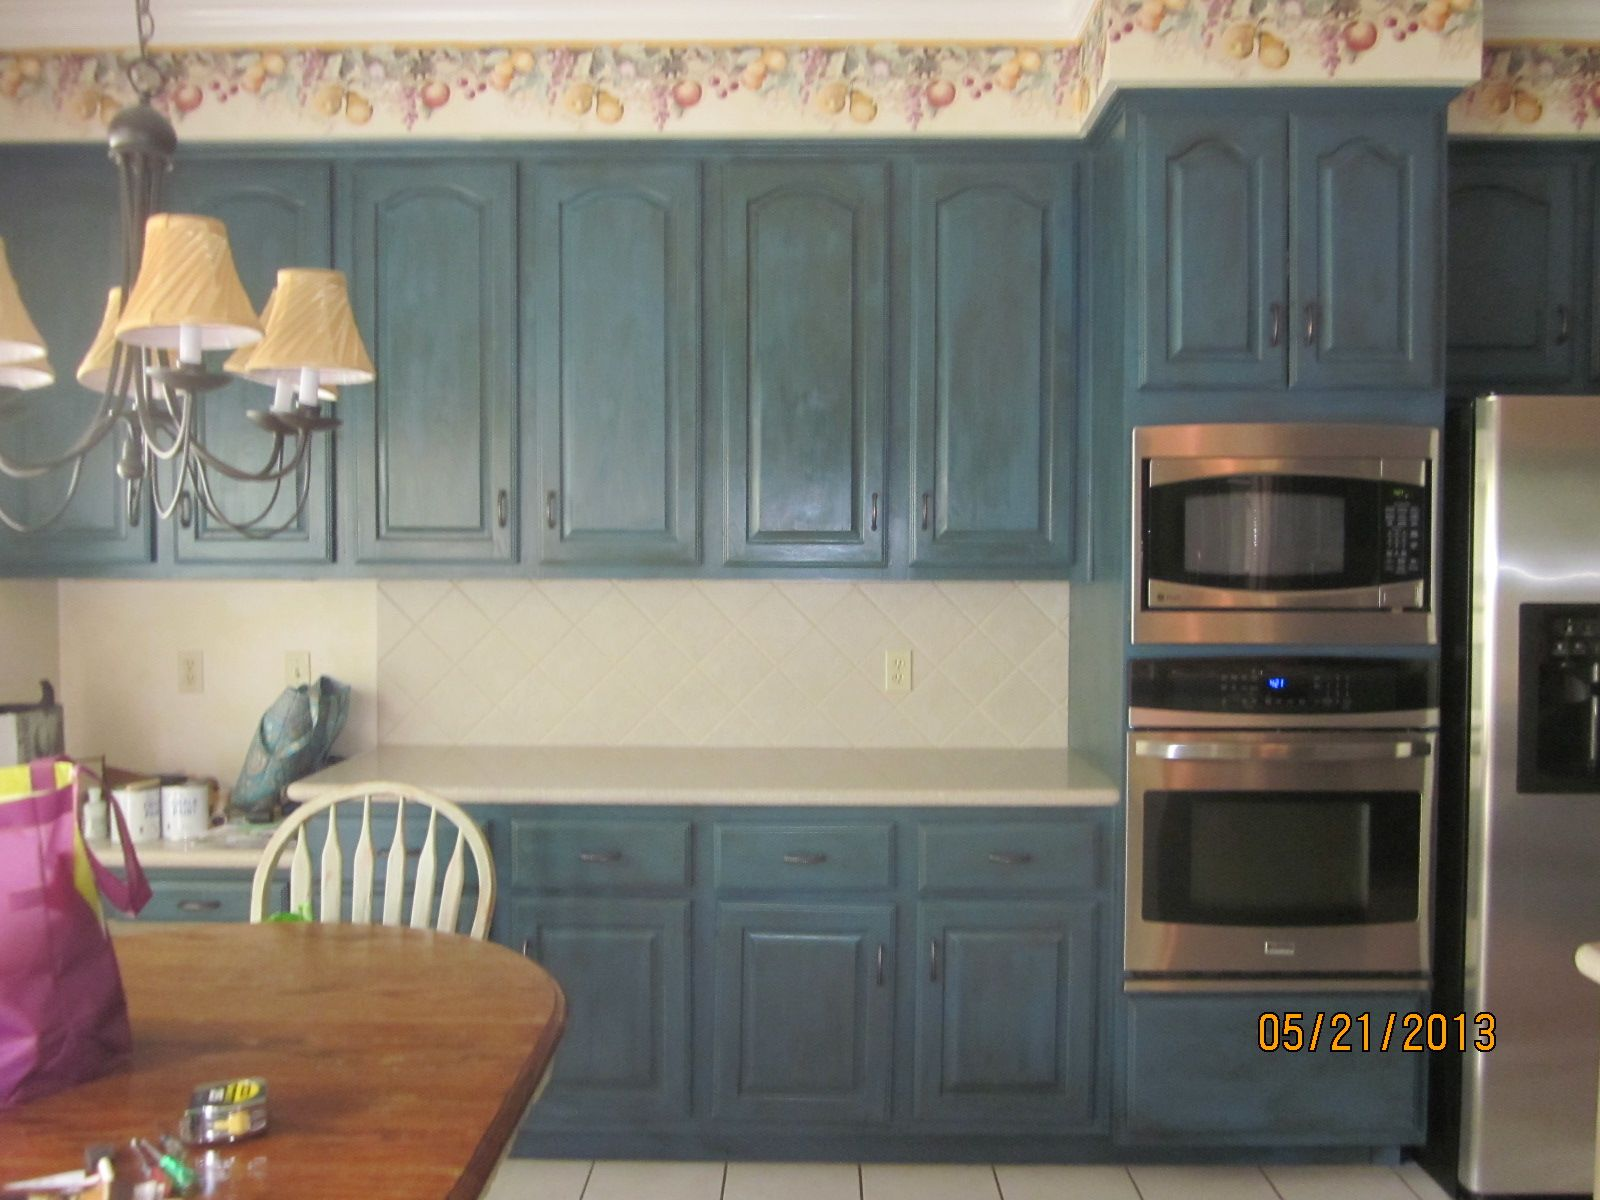 Kitchen cabinets painted by a friend of mine. She used Annie Sloan ...